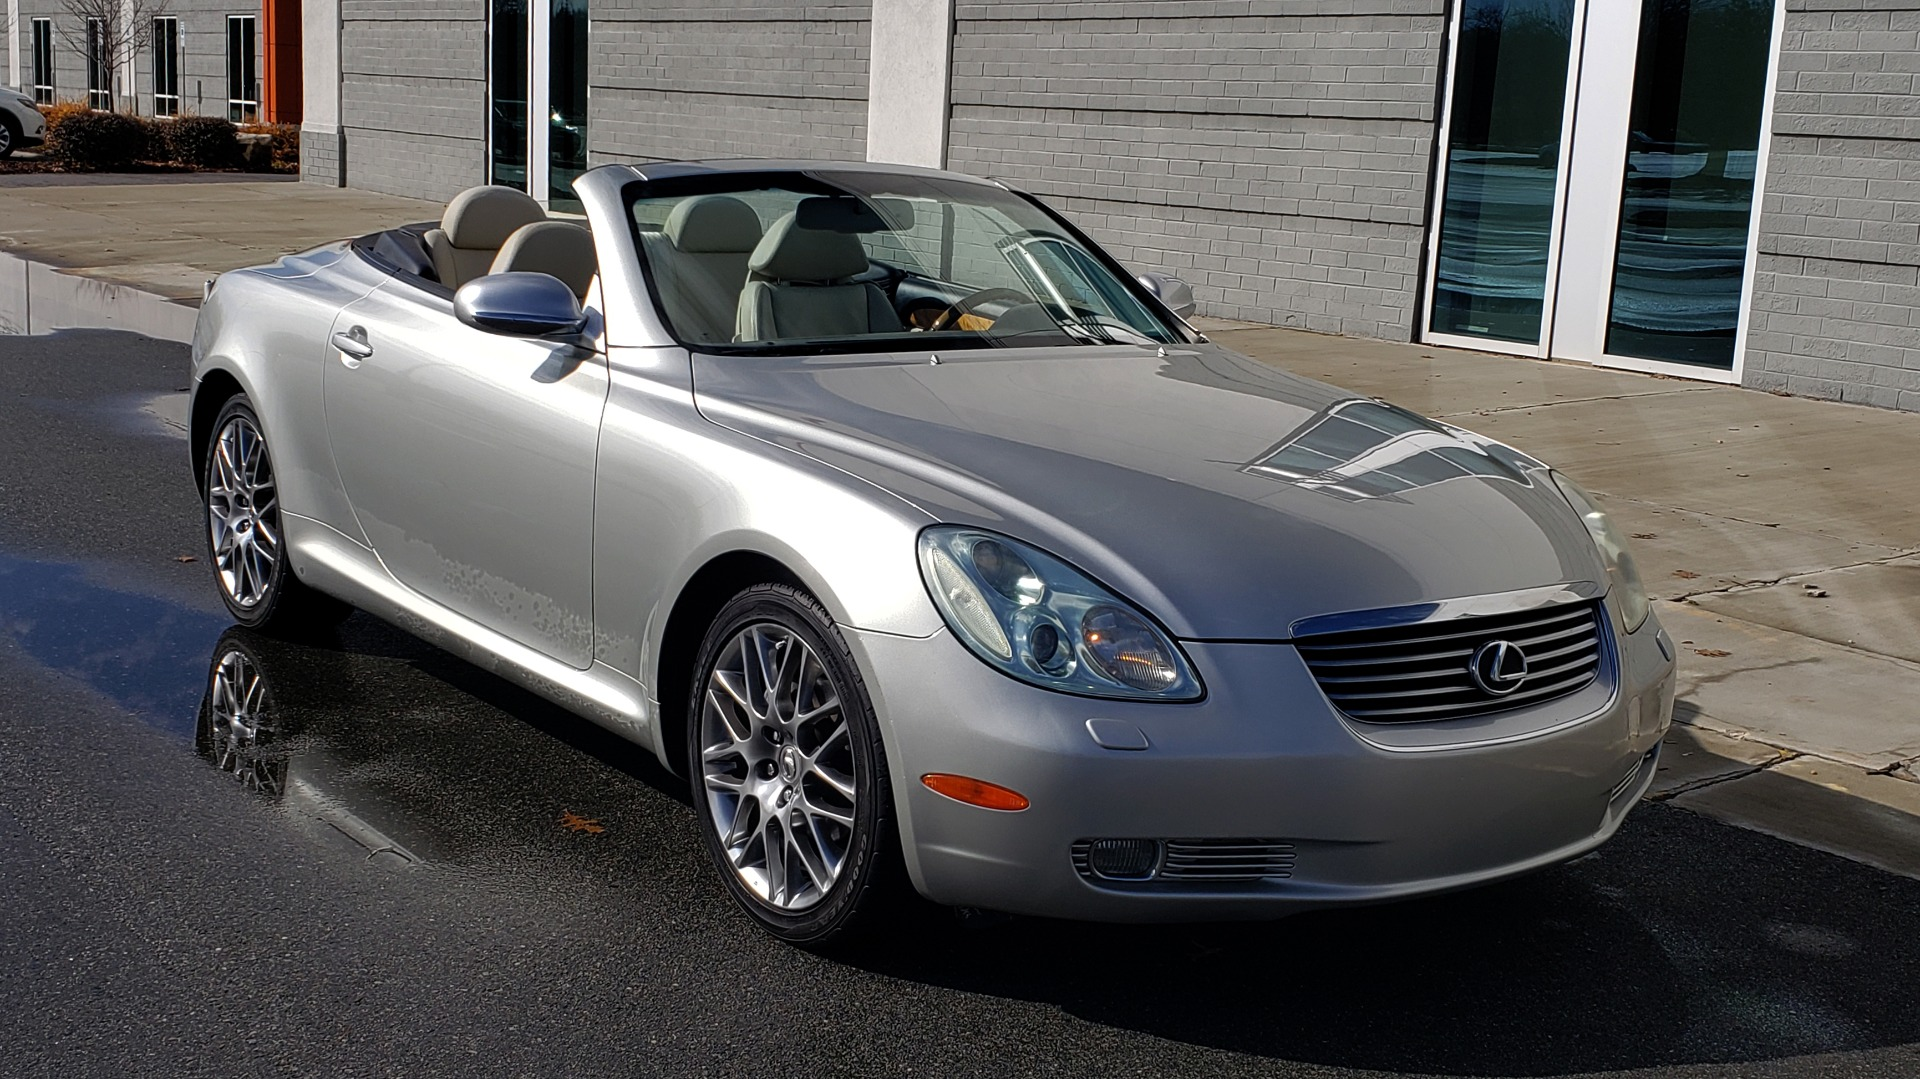 Used 2004 Lexus SC 430 CONVERTIBLE / 4.3L V8 / 5-SPD AUTO / MARK LEVINSON / 18IN WHEELS for sale Sold at Formula Imports in Charlotte NC 28227 18